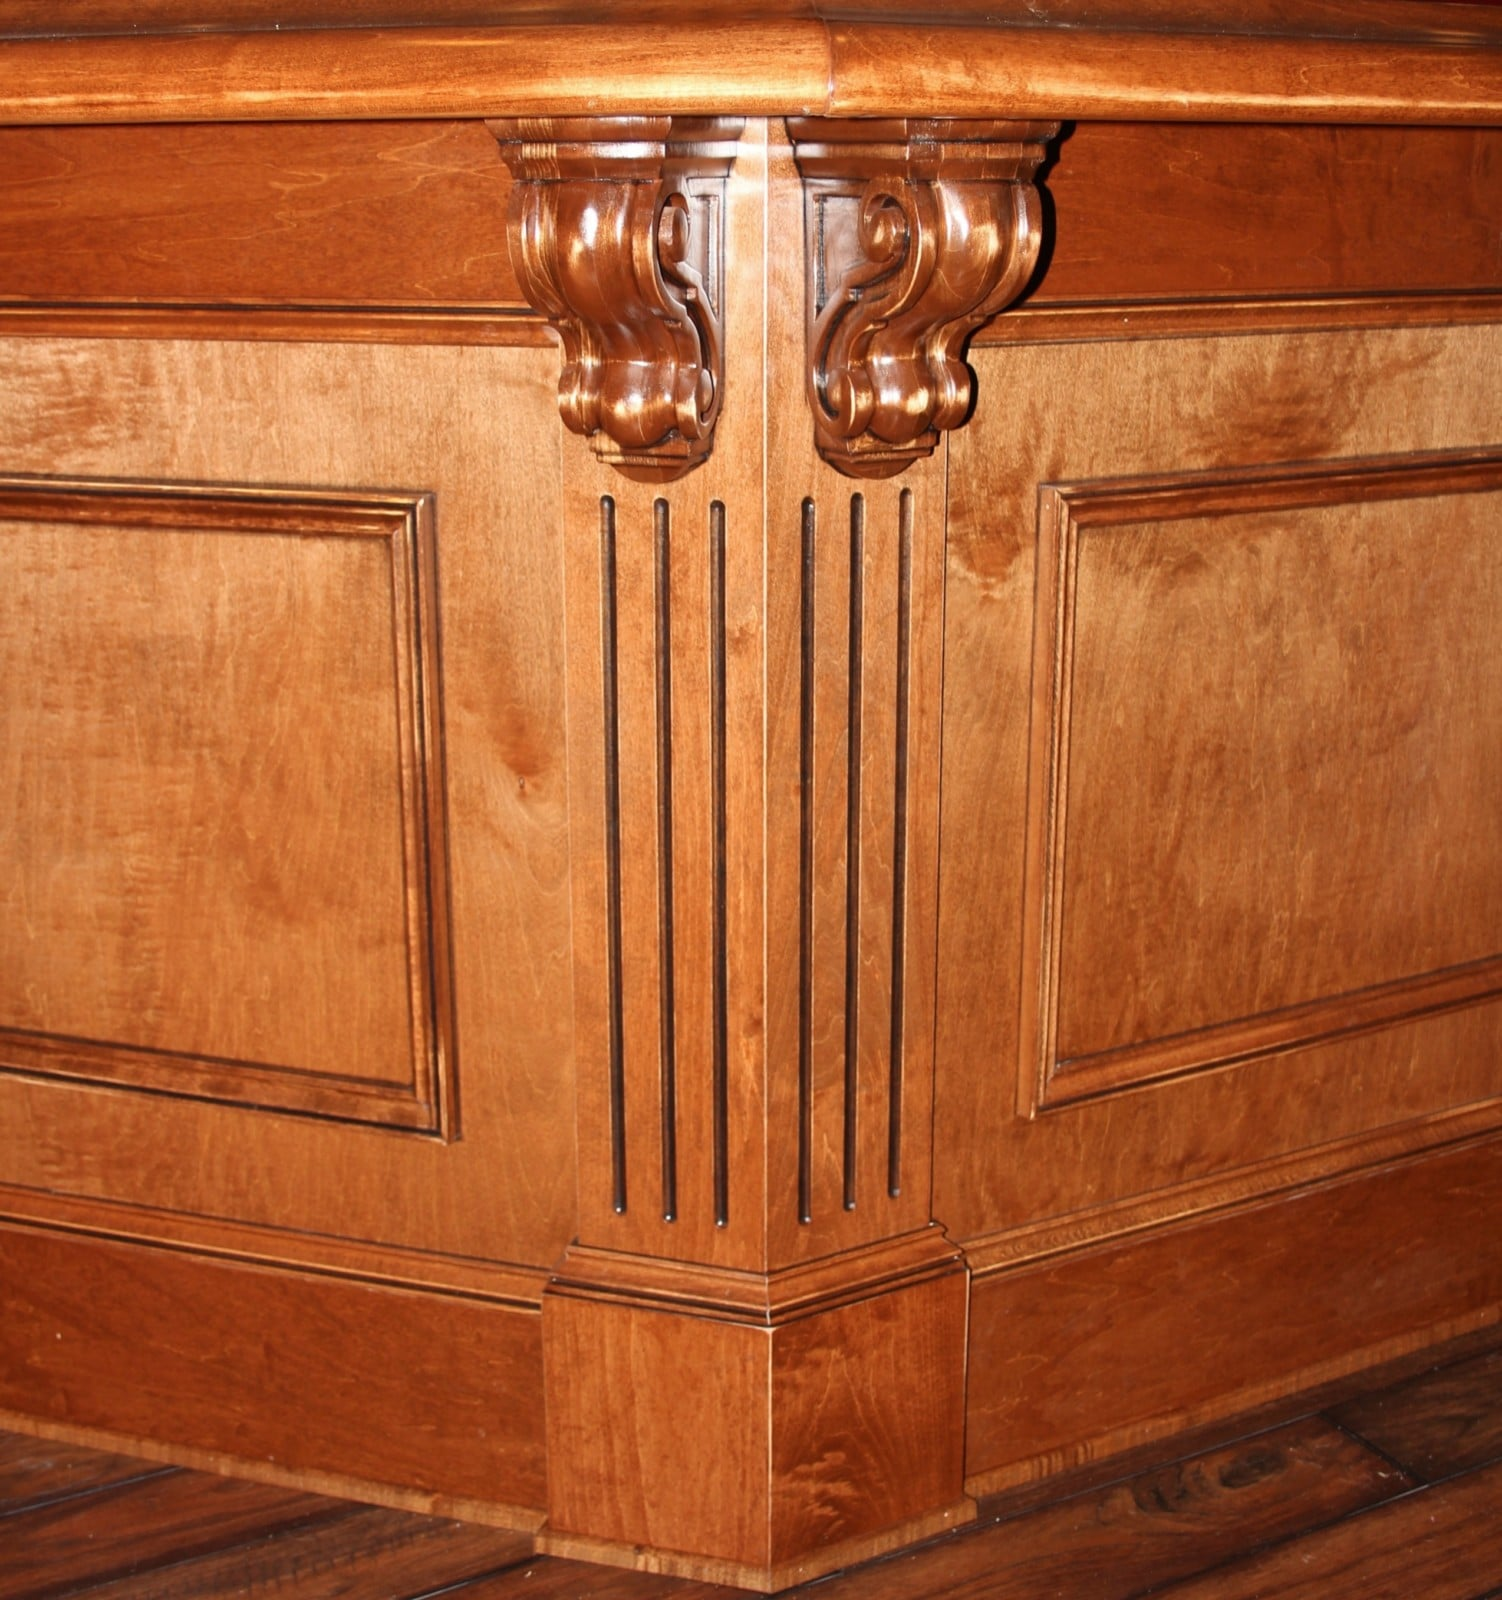 custom basement bar,basement renovation contractors maryland,man cave,woman cave,interior restoration baltimore,adapted housing,certified aging in place specialist,finished basements,home theater,house improvement contractor,artisan home,game room